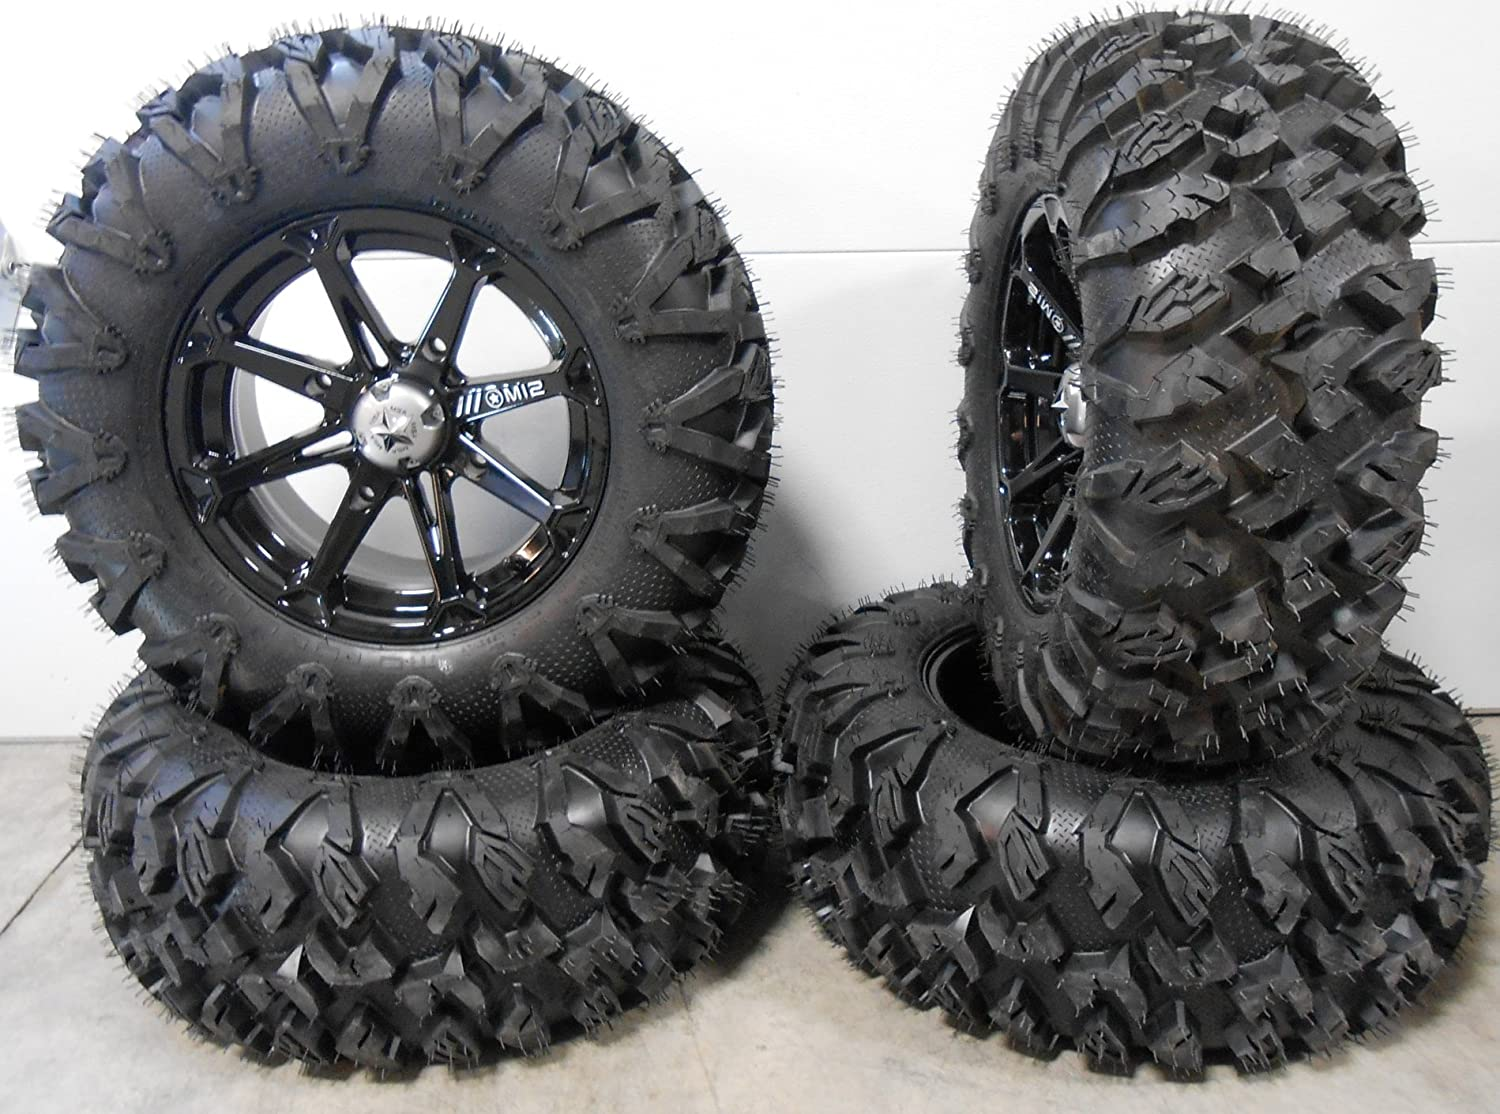 Bundle - 9 Items: MSA Black Diesel 14' ATV Wheels 27' EFX MotoClaw Tires [4x156 Bolt Pattern 12mmx1.5 Lug Kit] Multiple